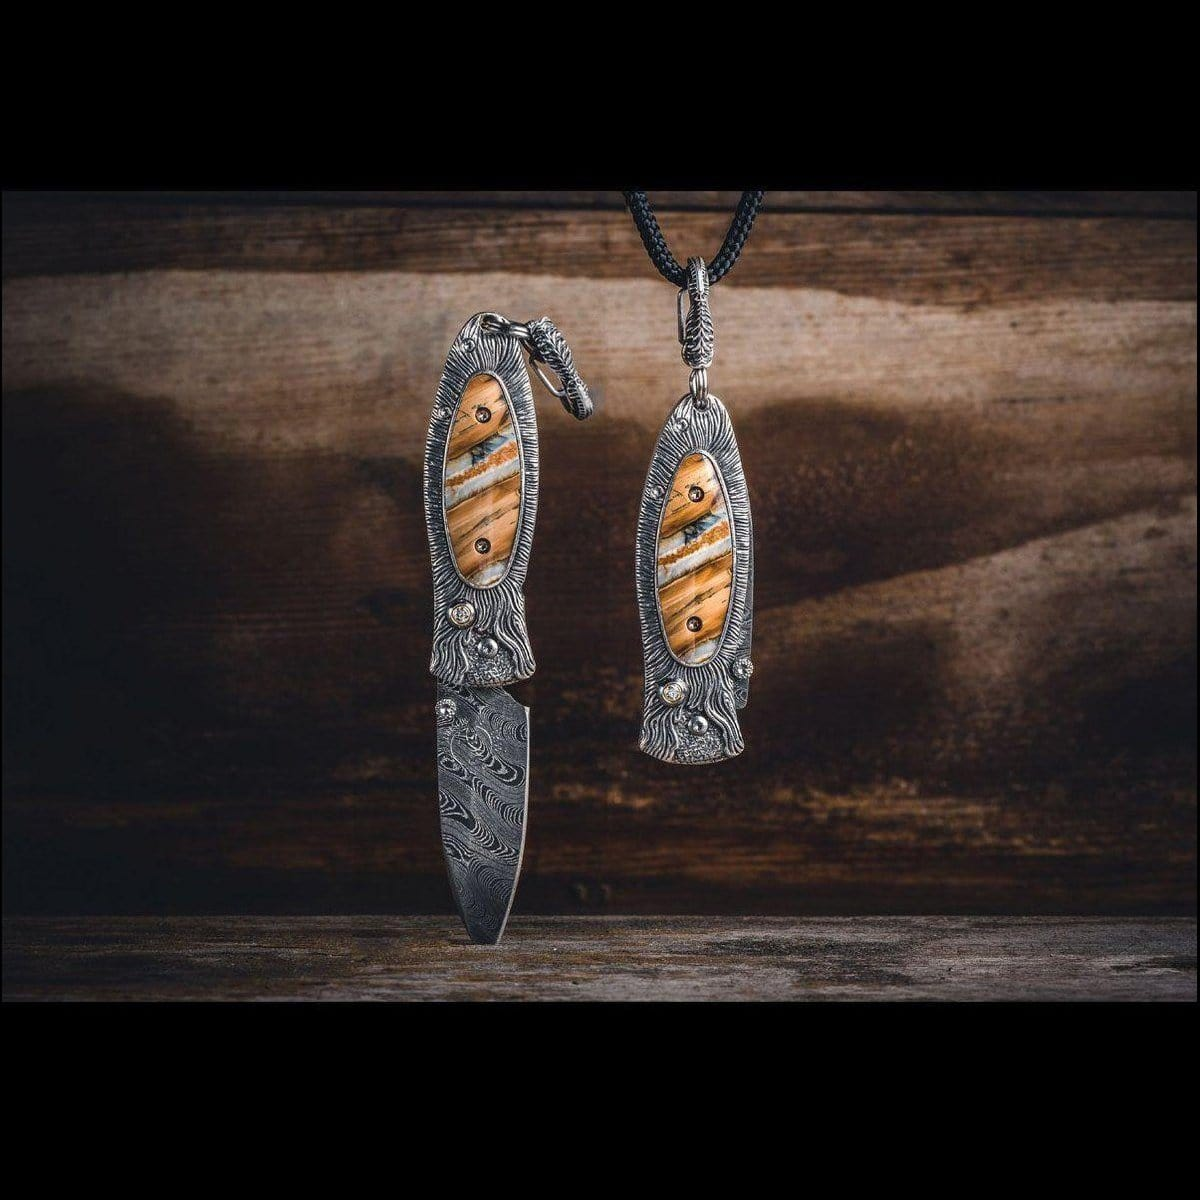 Morpheus Fire Pendant Knife - B02 FIRE - William Henry